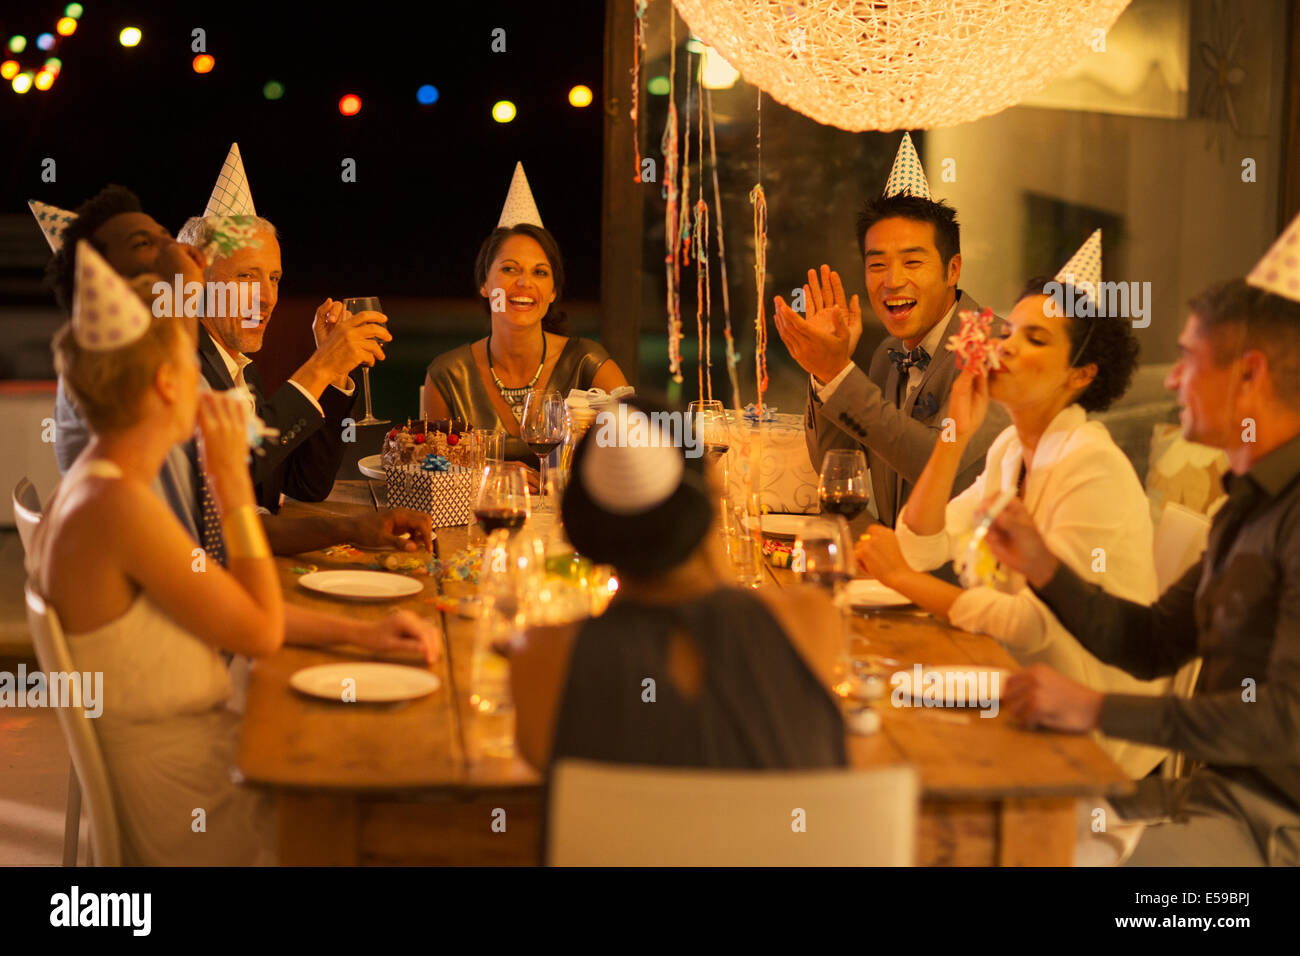 Friends cheering at birthday party - Stock Image